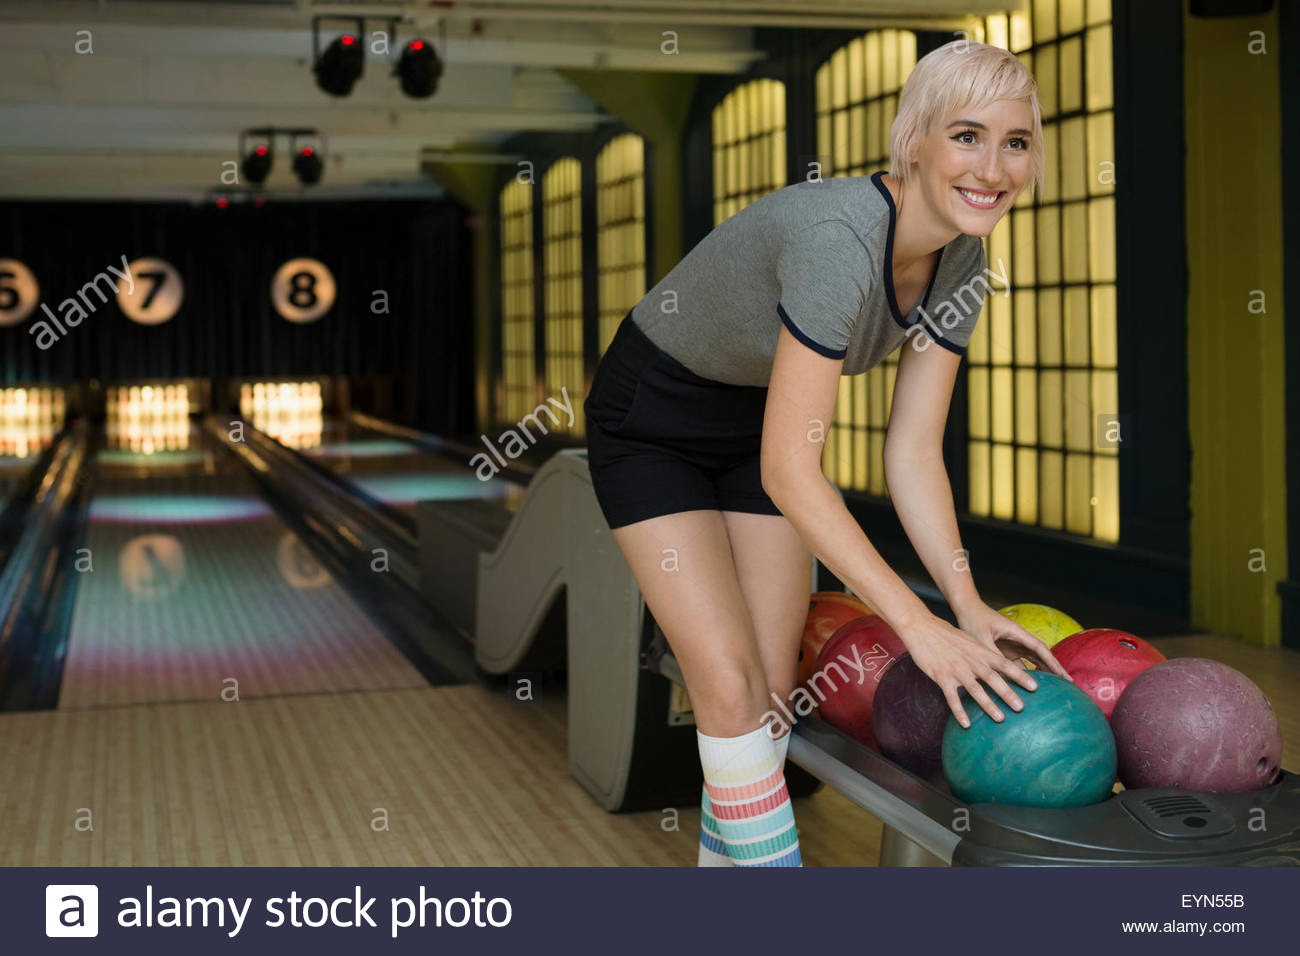 Smiling young woman choosing bowling ball du rack Photo Stock